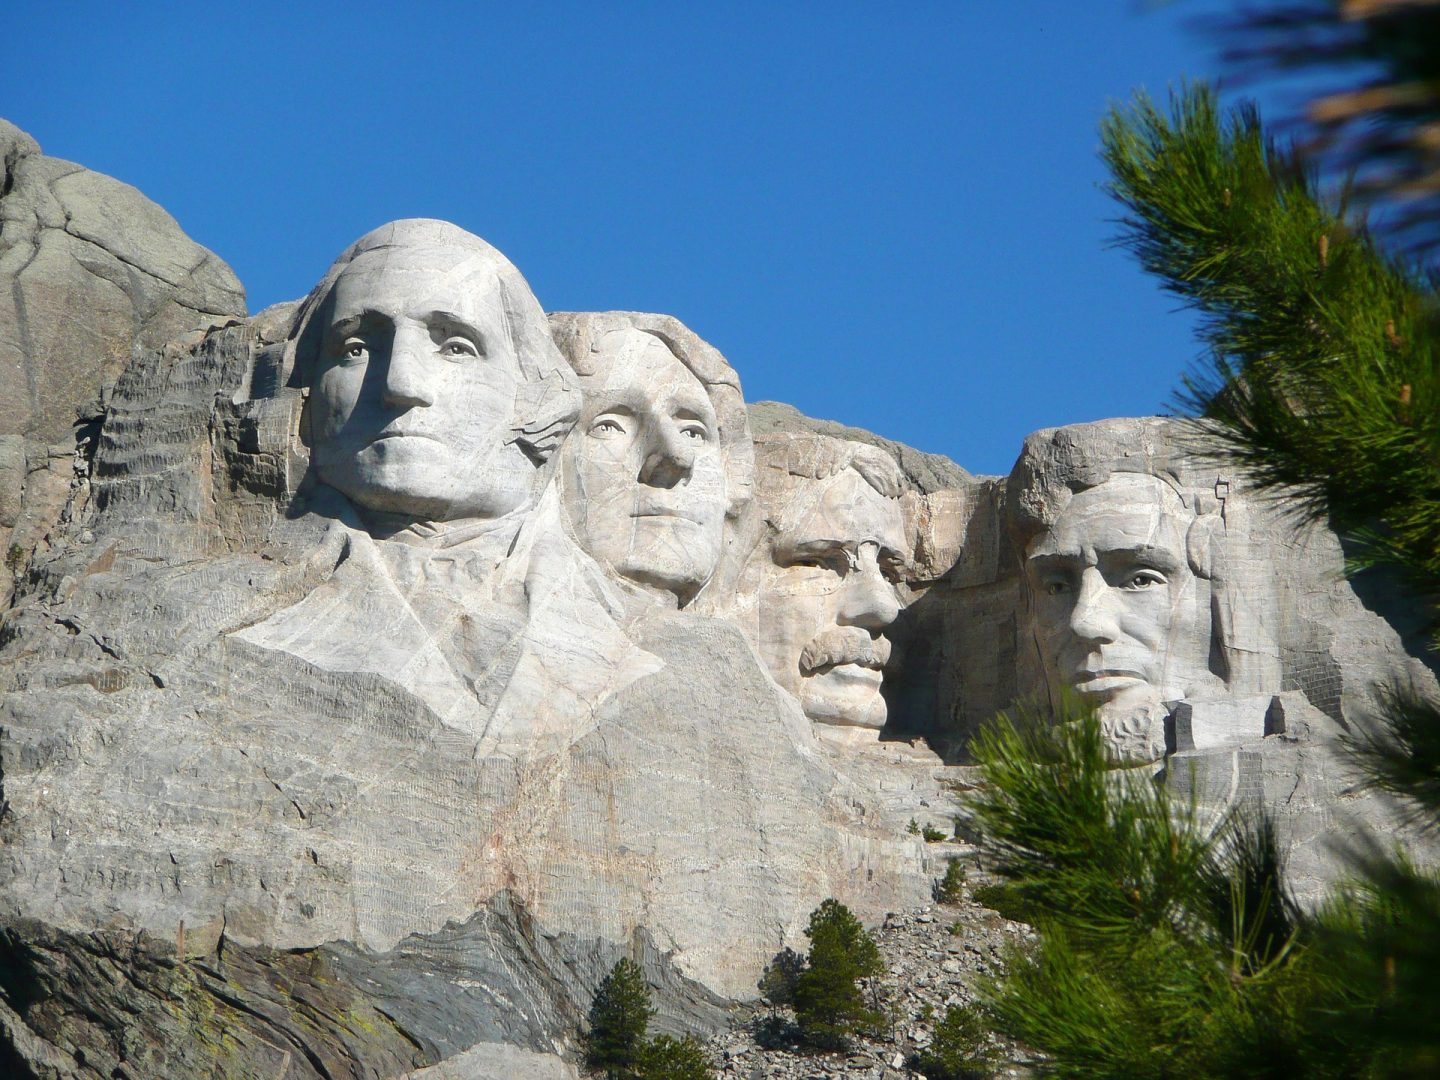 Mount Rushmore, USA